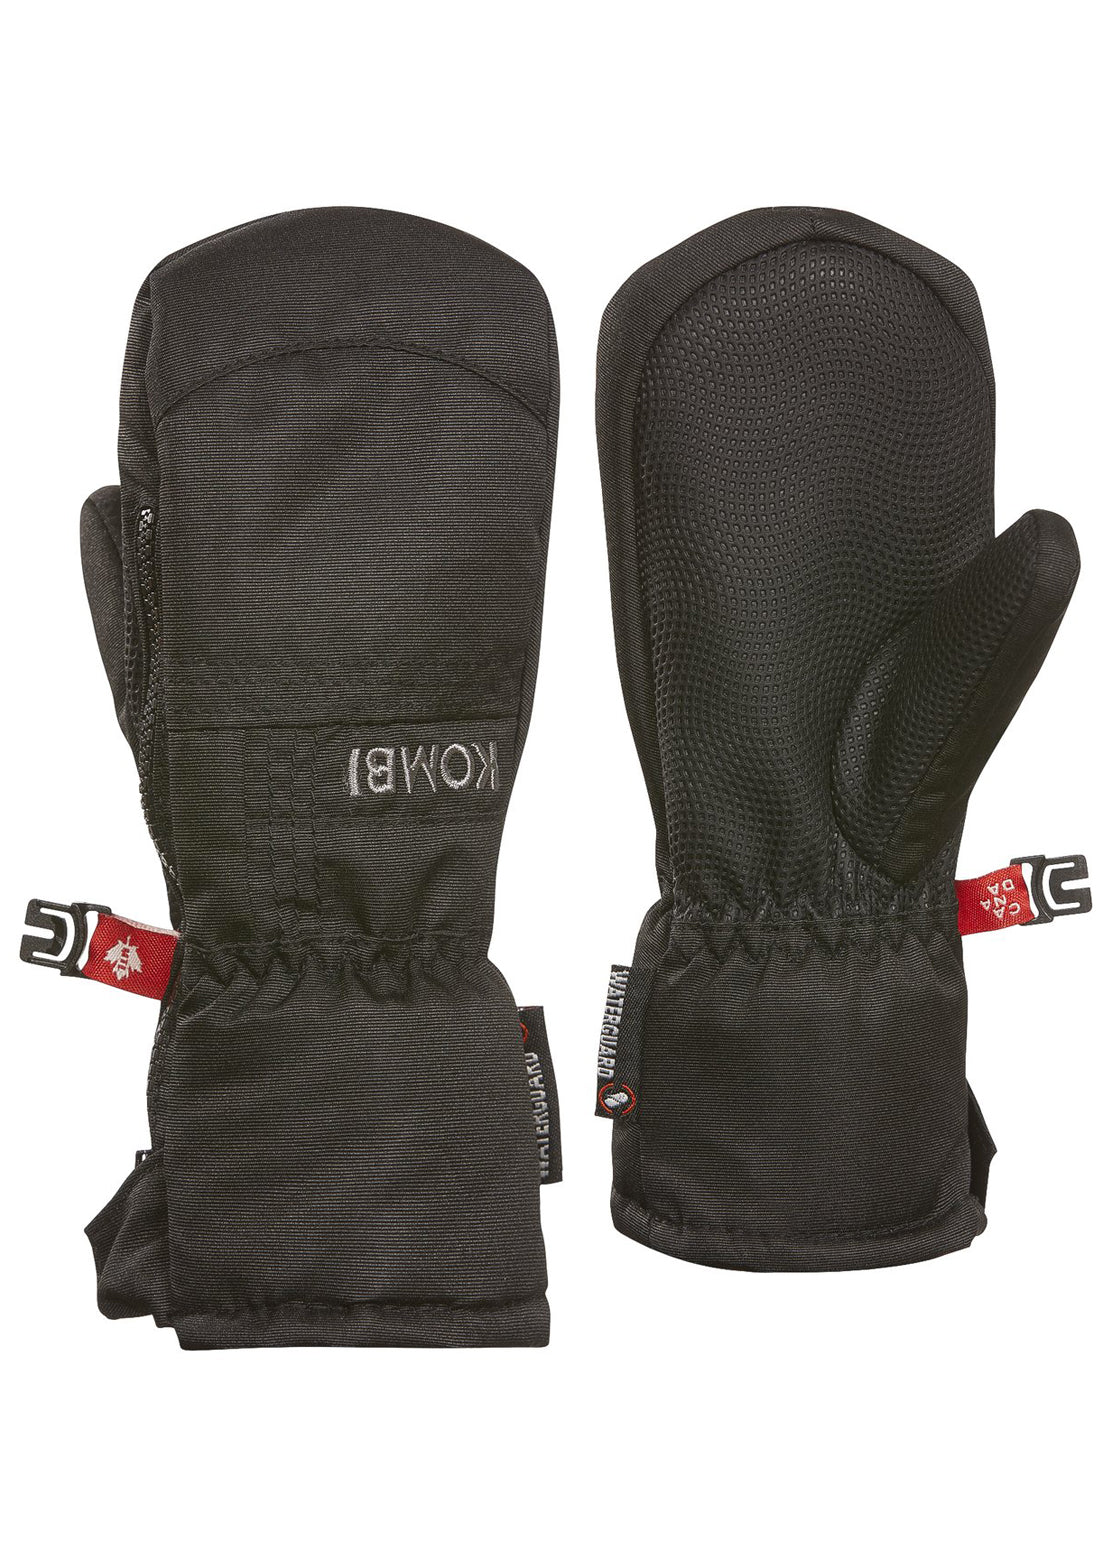 Kombi Junior Toddler Micro Pee Wee Mitt Black